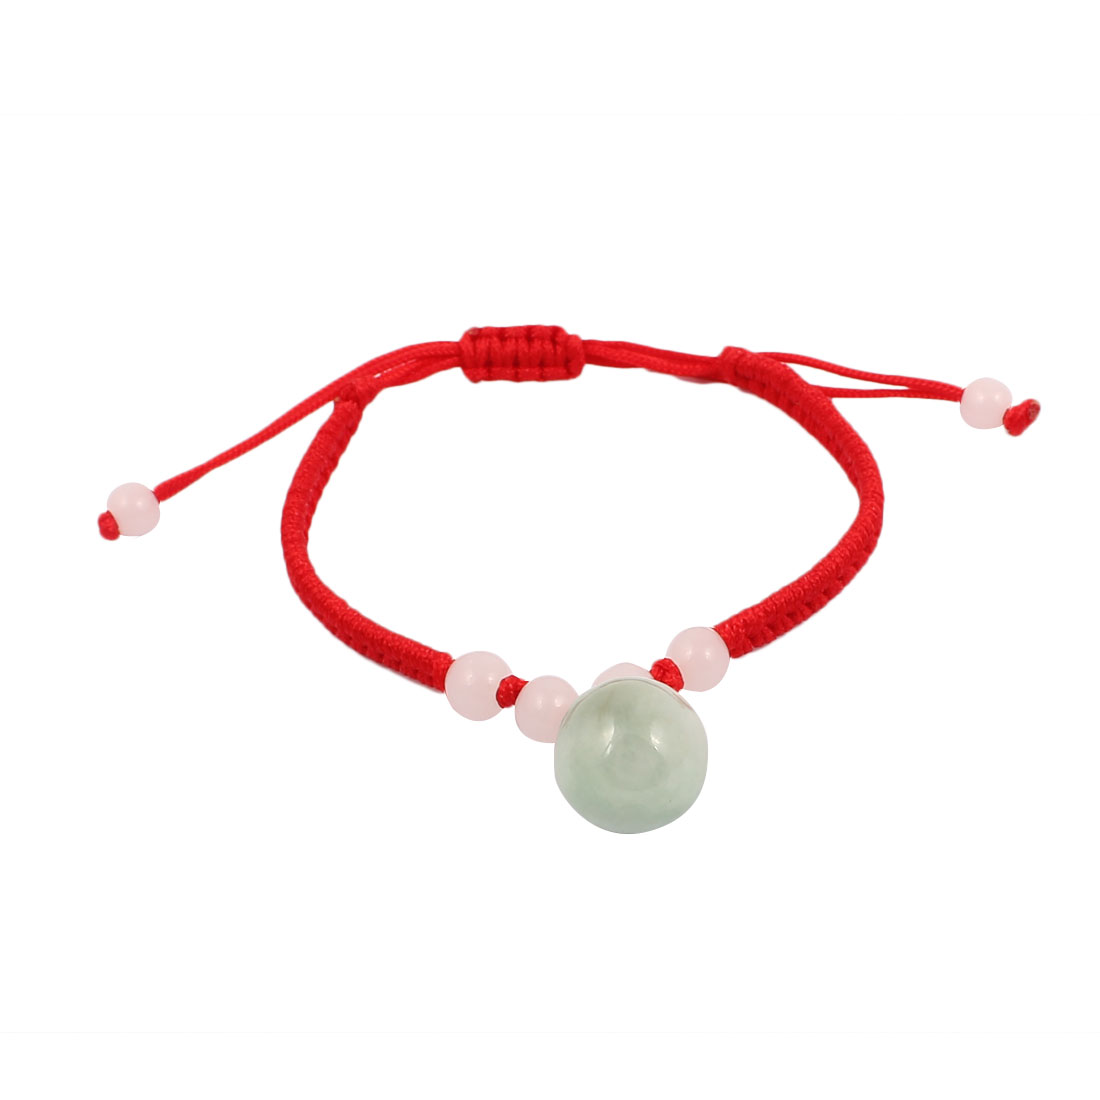 Lady Handmade Braided Rope Plastic Beads Decor Pull String Wrist Bracelet Red Green